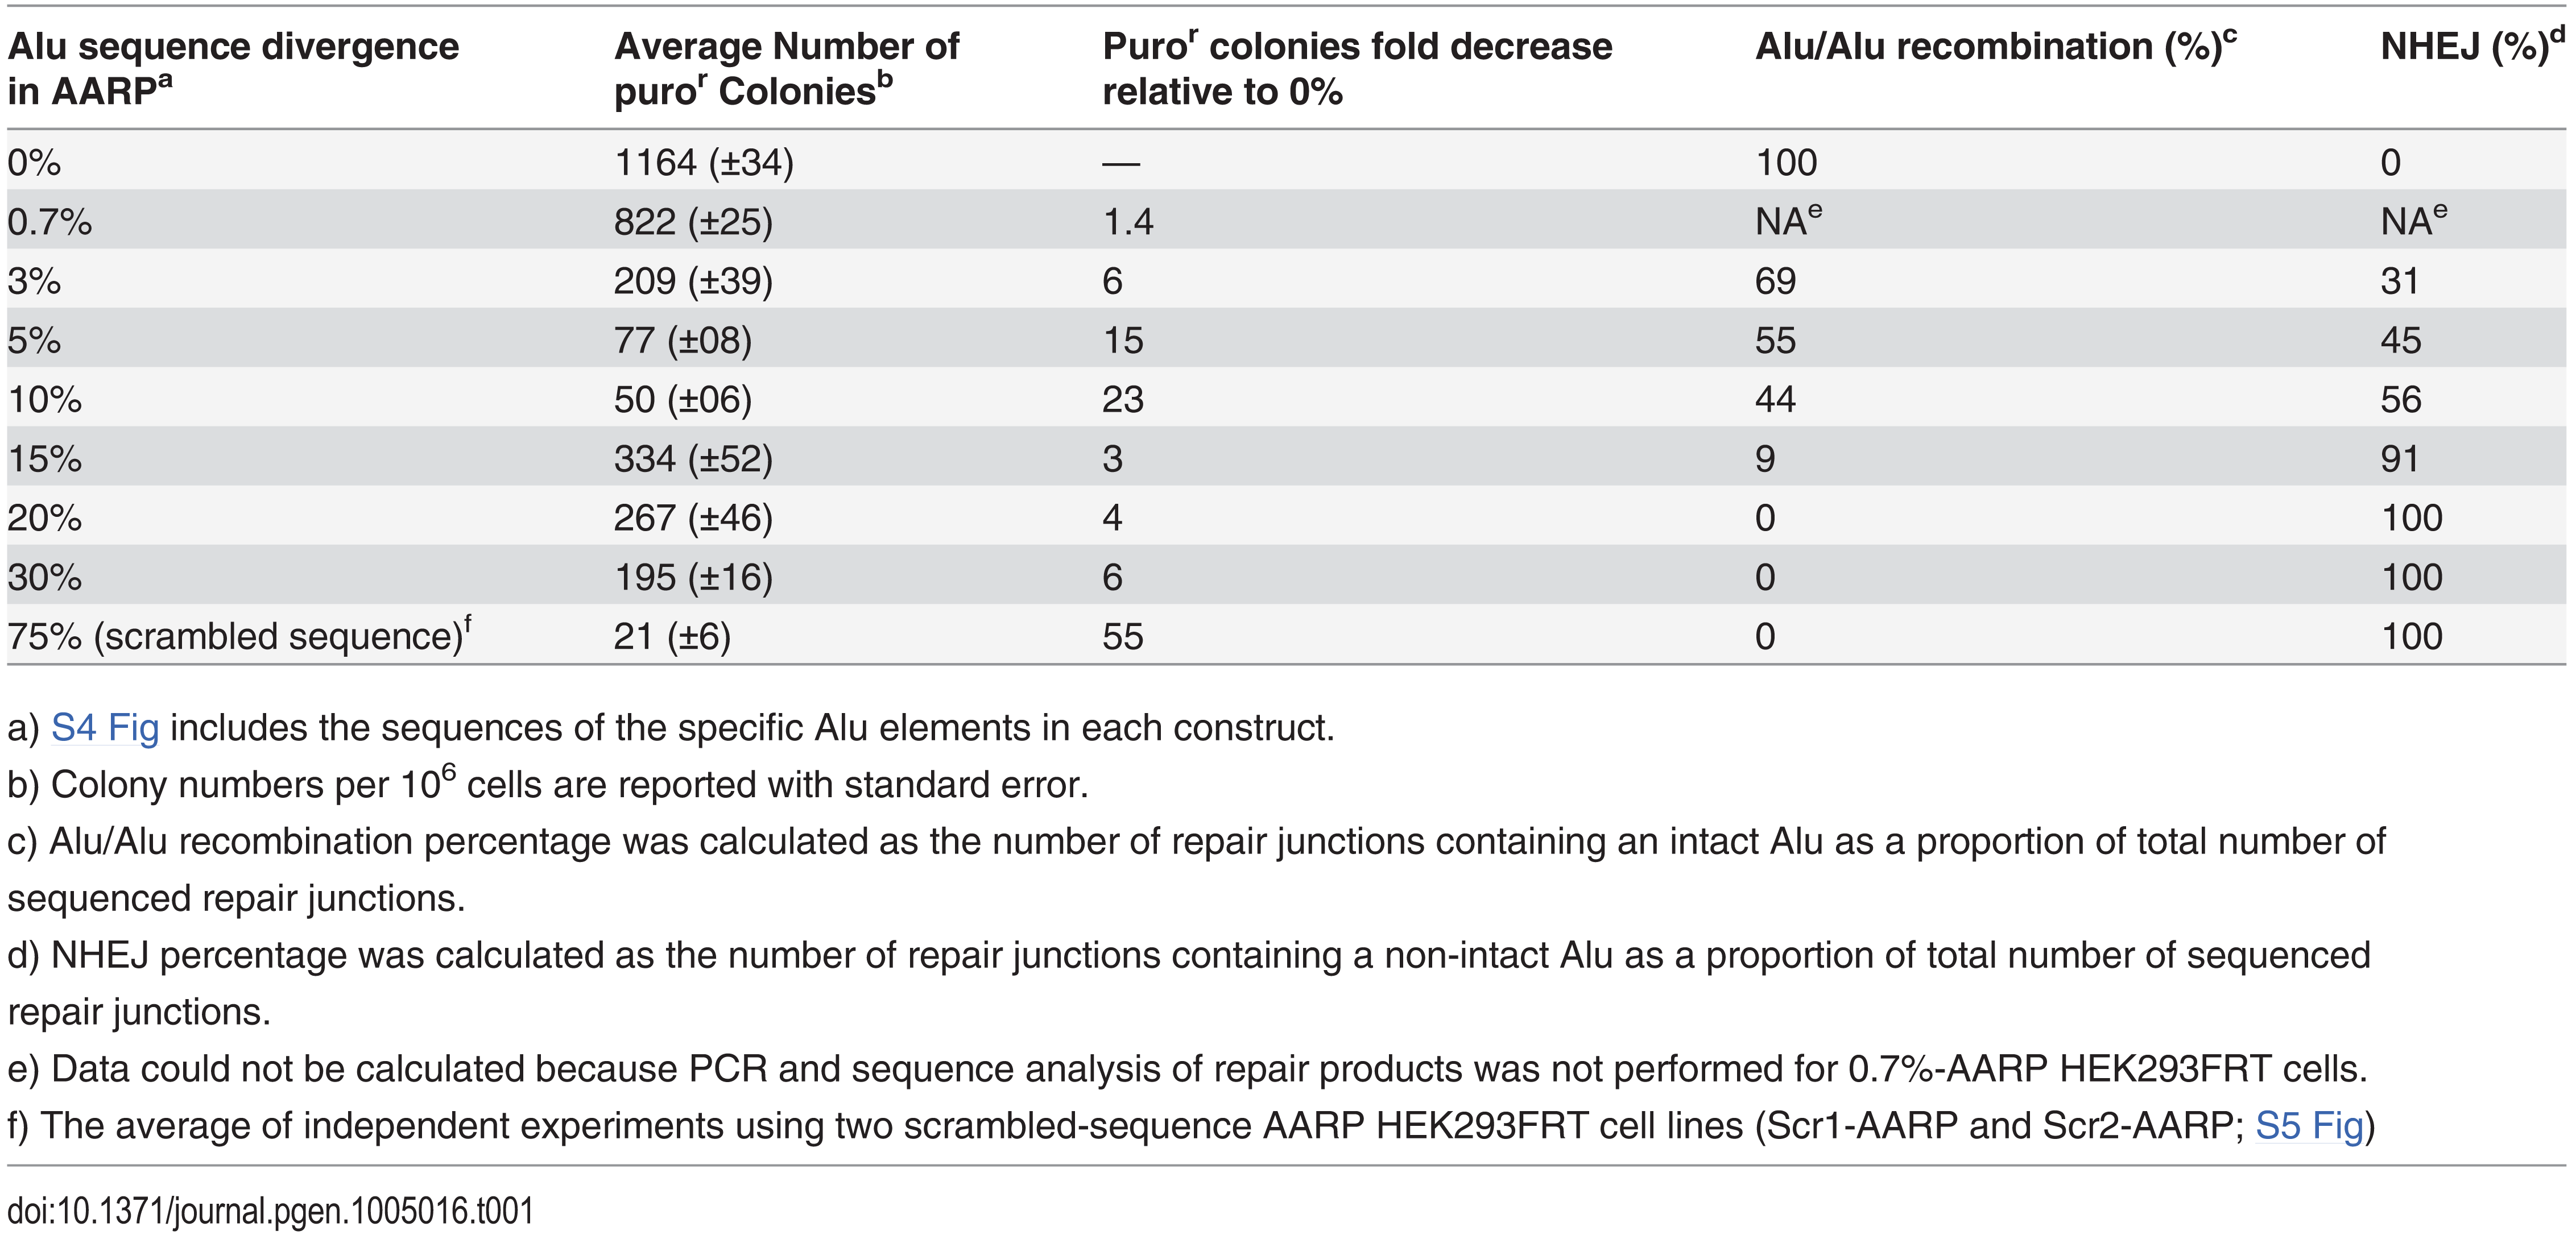 The average puromycin resistant (puro<sup>r</sup>) colonies and repair pathway contribution for AARP HEK293FRT cells.